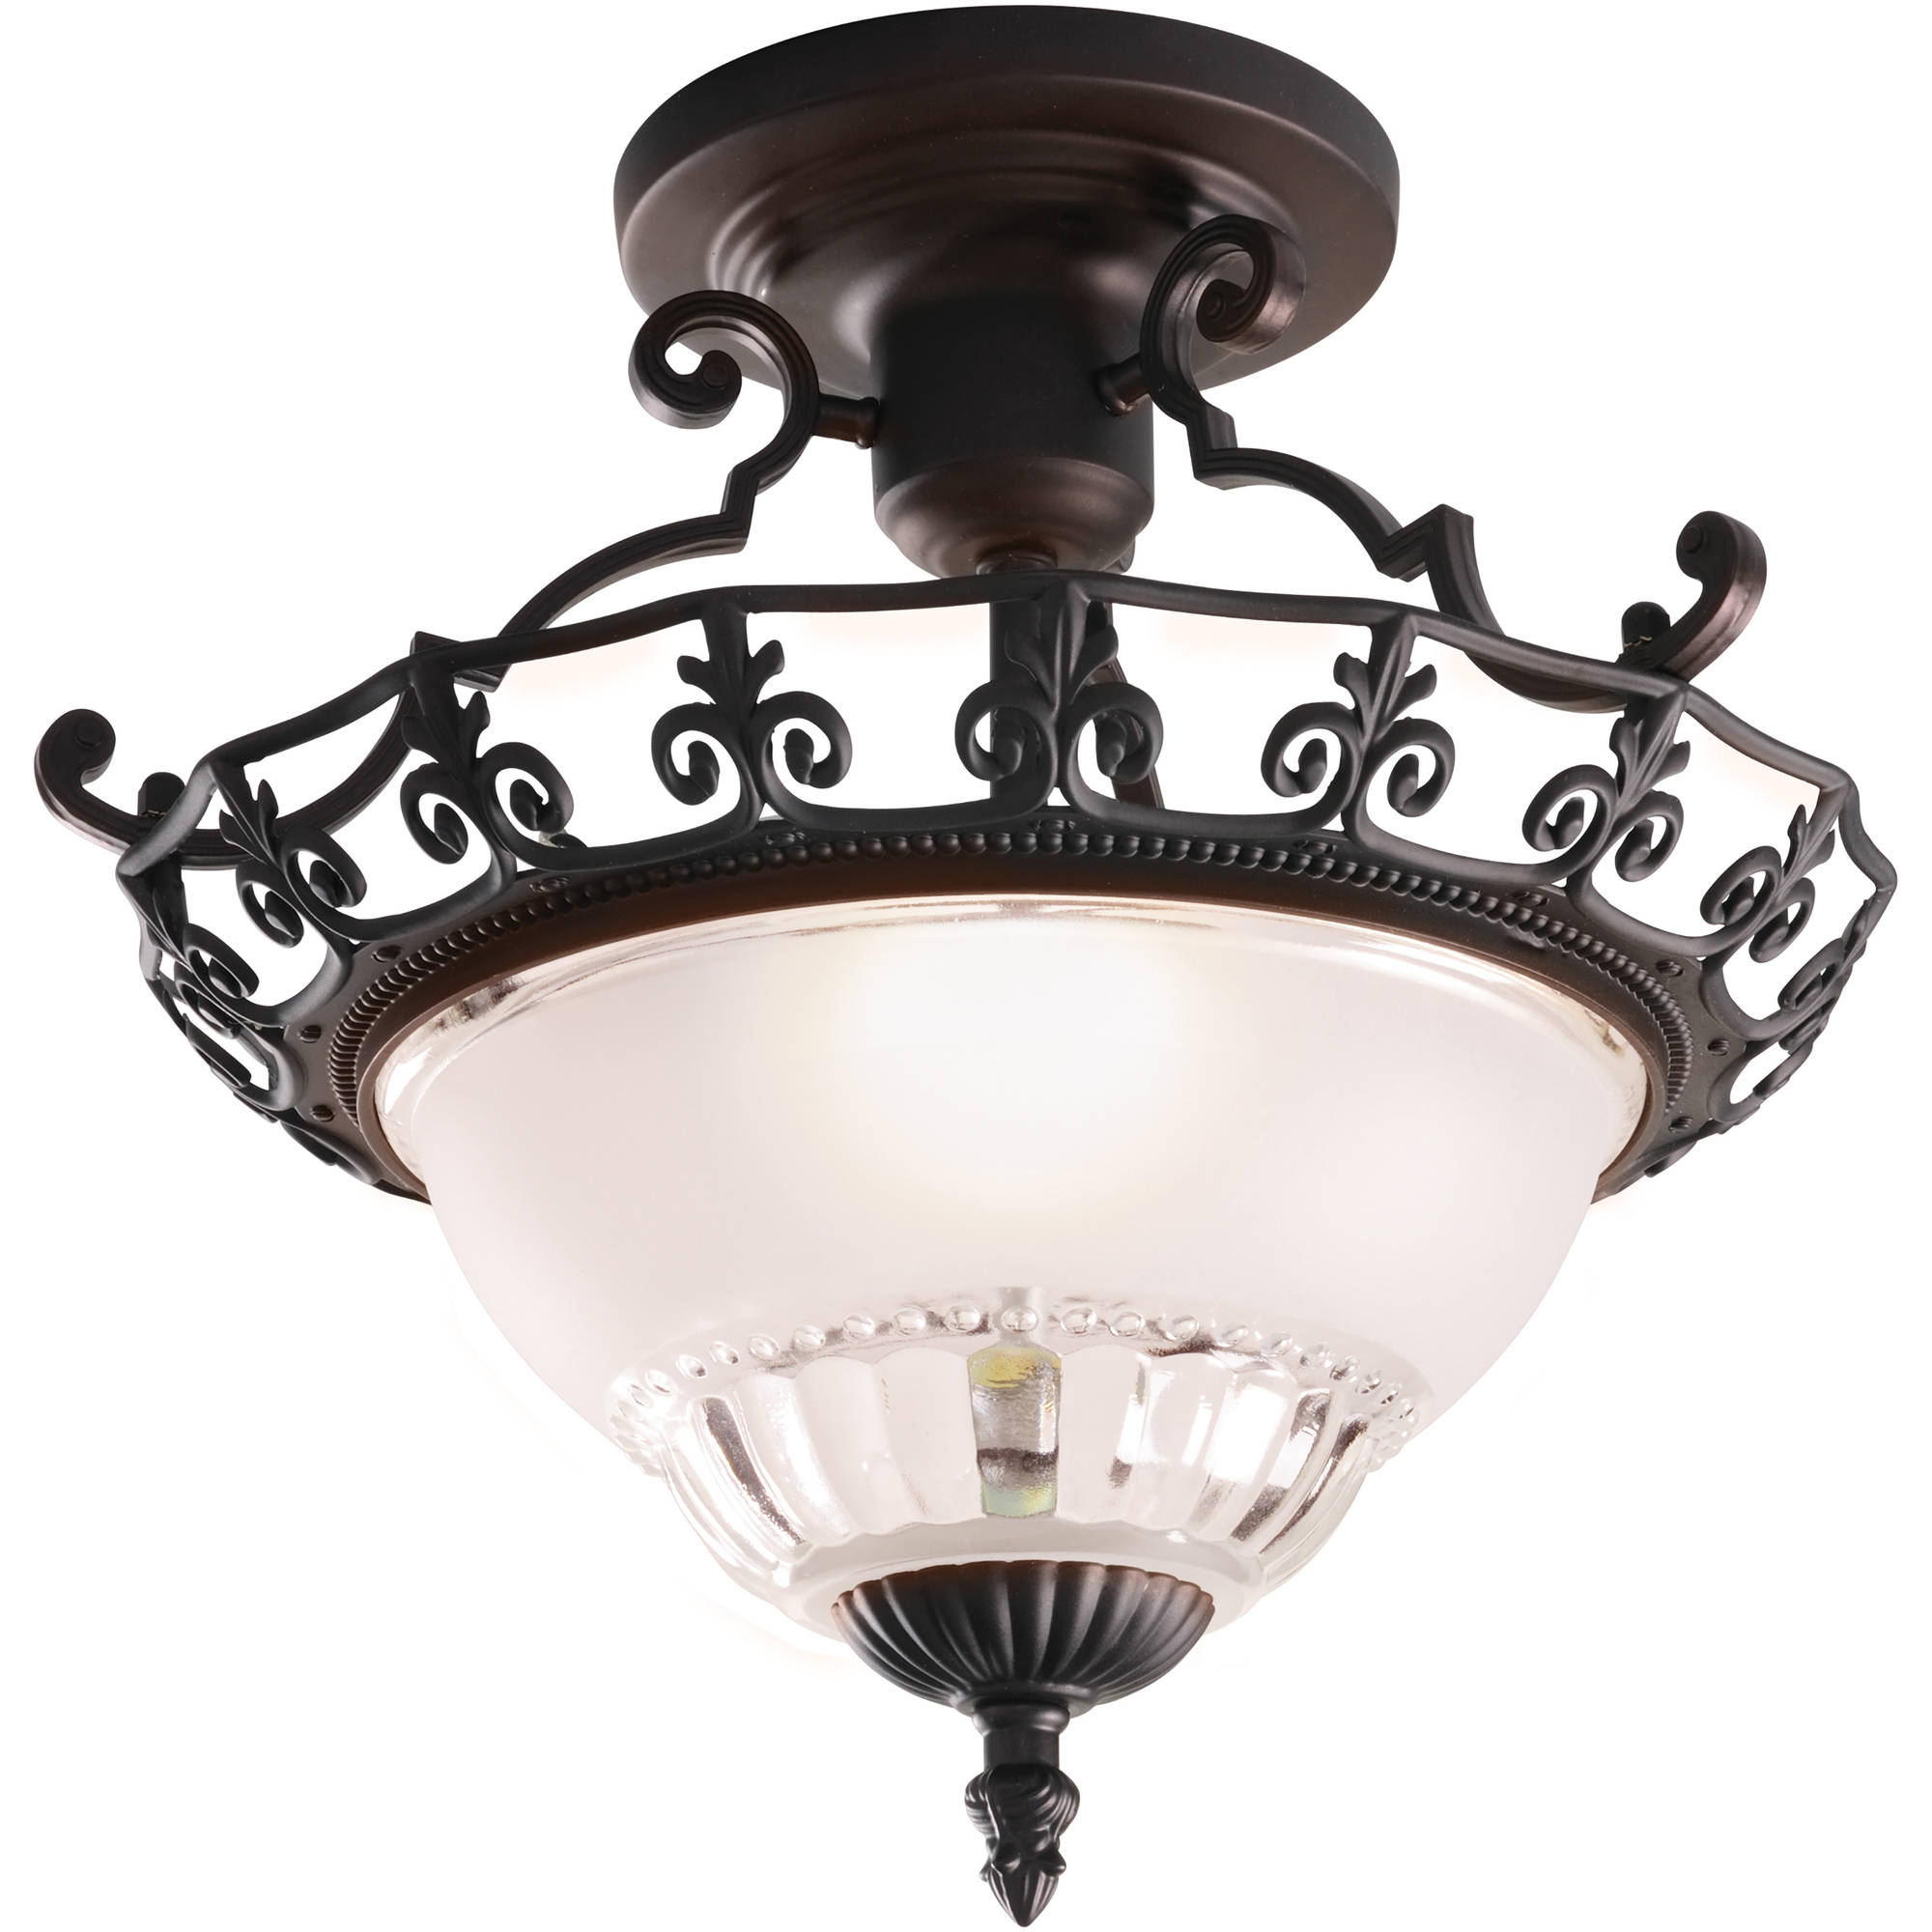 Remarkable Chapter Indoor 11 25 Ceiling Semi Flush Mount Oil Rubbed Bronze Interior Design Ideas Philsoteloinfo